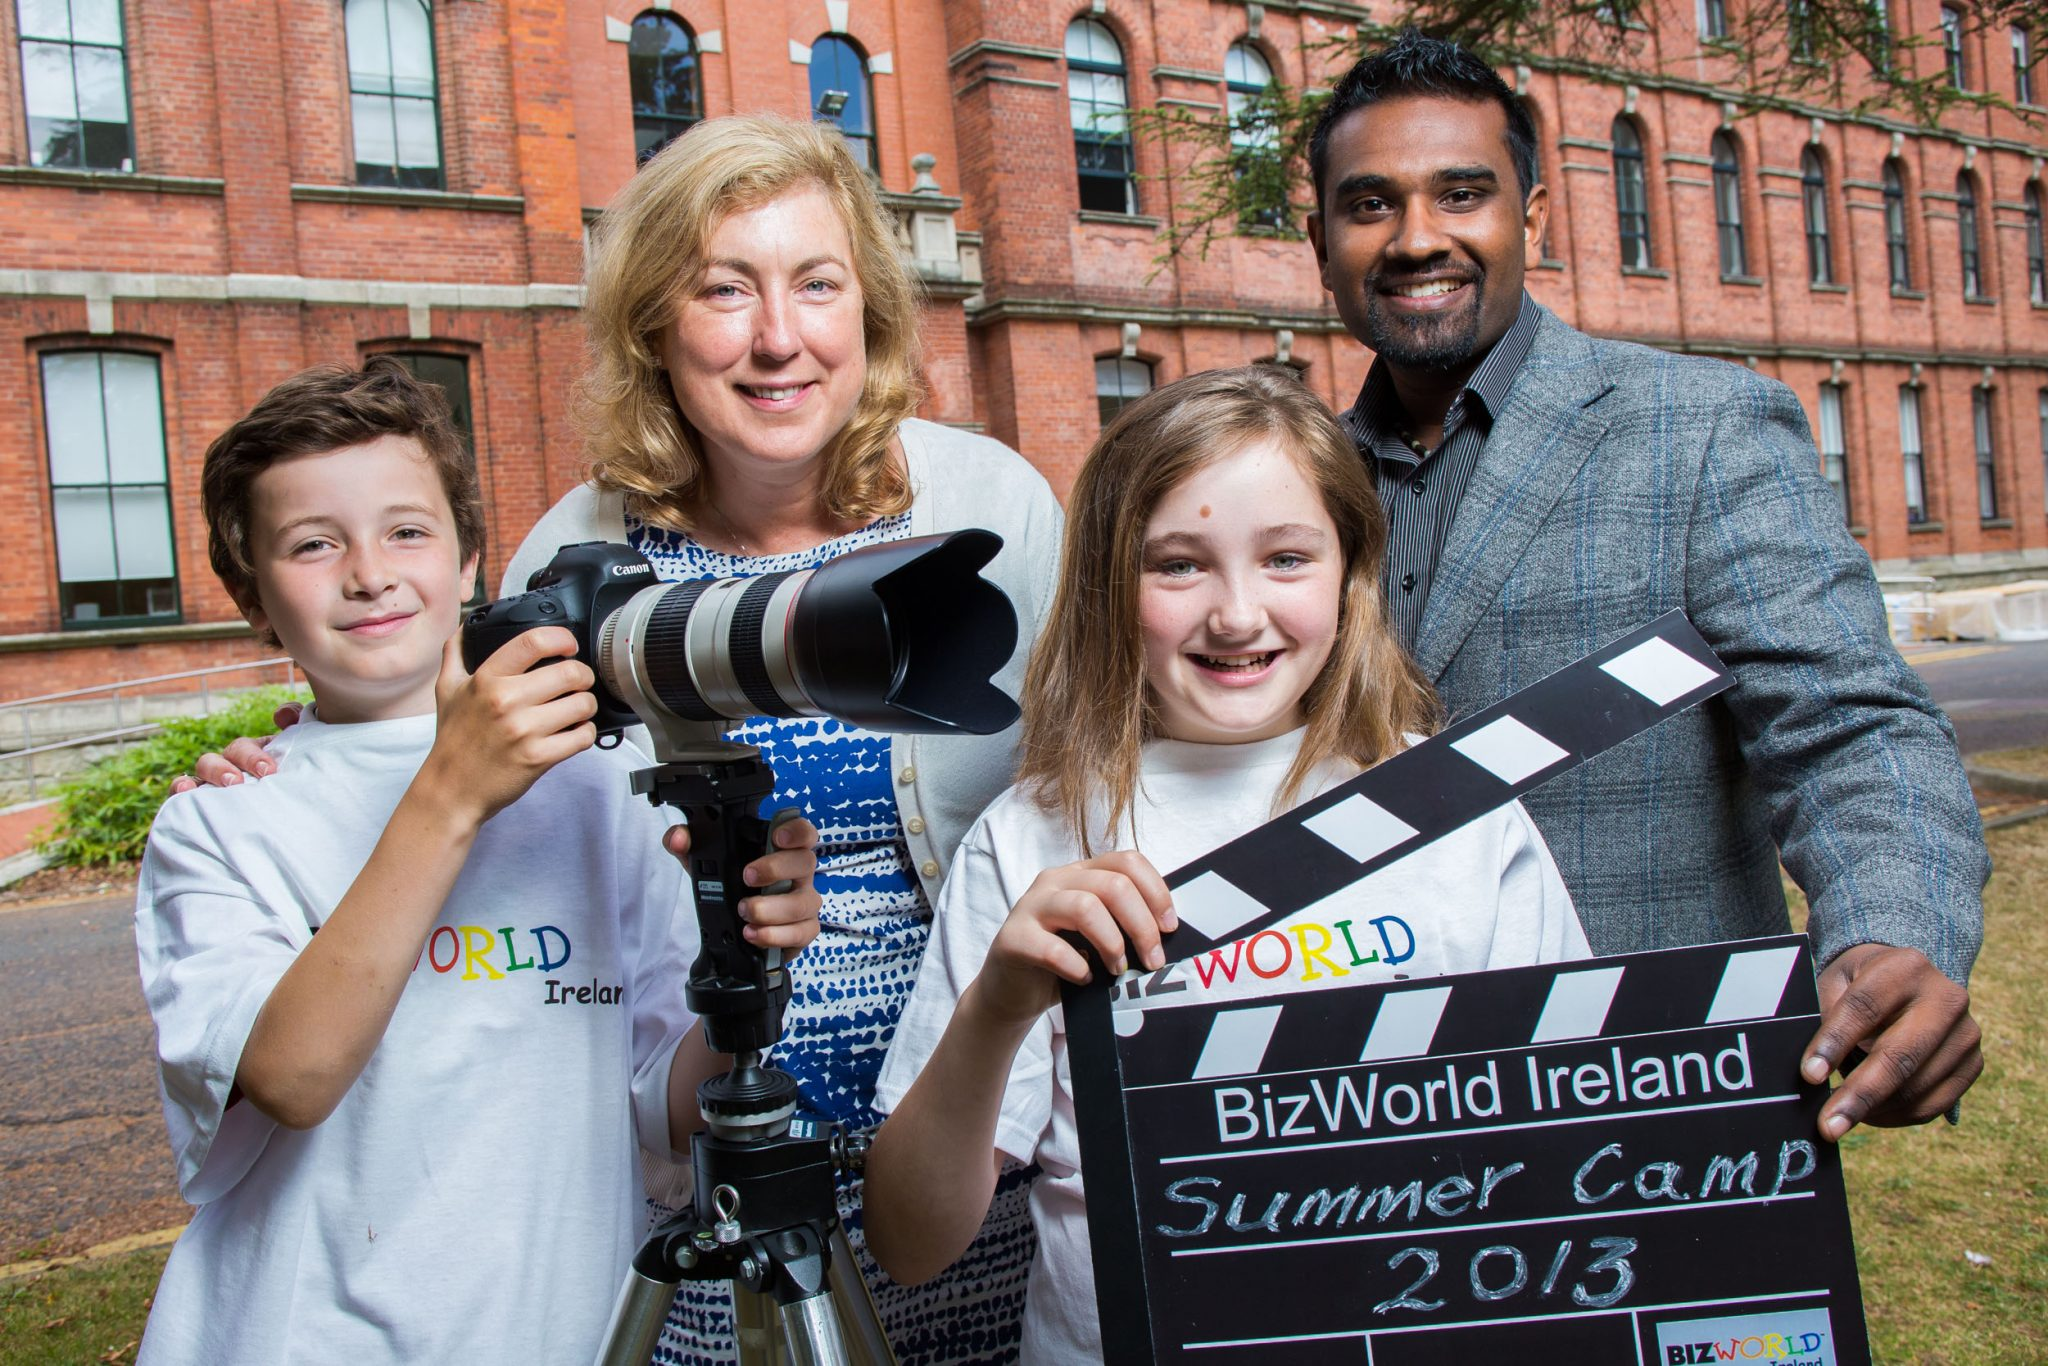 Doing the Business this summer!…18-7-13  Bizworld Ireland is hosting summer camps at Smurfit Business School this summer. Bizworld workshops usually take place in schools introducing money management, critical thinking and enterprise skills to children aged 10-13. Education is seen traditionally as equipping students with the necessary skills and knowledge to complete a CV in order to get a job but Bizworld is sowing the seeds in these young minds to consider that they may be creating employment in the future, taking in CV's and giving out jobs…sowing the seeds so that they can grow their future.  Pictured at a photocell to announce the workshops were; Government Adviser as part of the Entrepreneurship Forum creating a National Policy on Entrepreneurship, Daniel Ramamoorthy, and Orla Nugent, MBA Director Smurfit Business school with participating students Daniel Fitzgerald (10 from Blackrock, and Leah Murray McArdle (11) from Sandyford. Further information: Contact CEO Fiona.mckeon@bizworldireland.ie       www.bizworldireland.ie ph. 086 2209750  PIC. KEITH ARKINS PHOTOGRAPHY